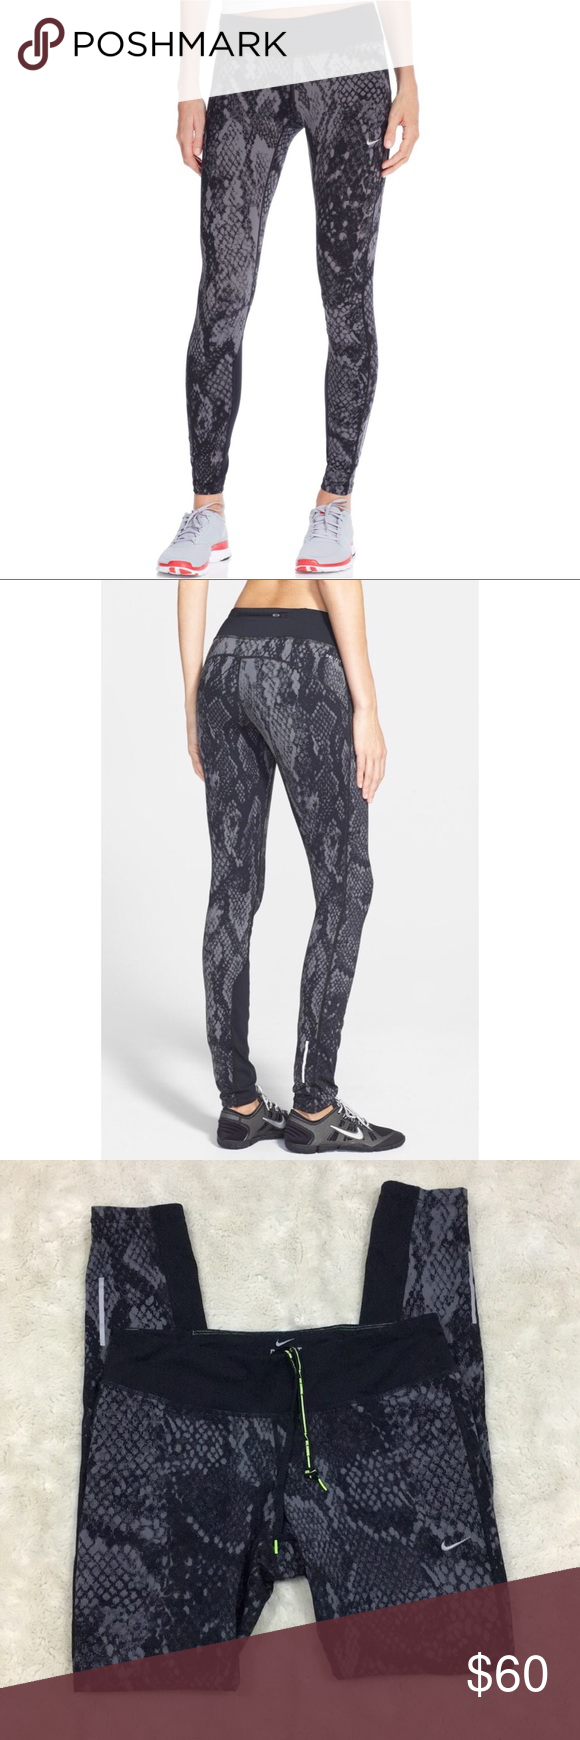 4cb0a6bd5de34 Nike 'Epic Lux' Snakeskin Running Tights Ultra-stretchy, moisture-wicking  Dri